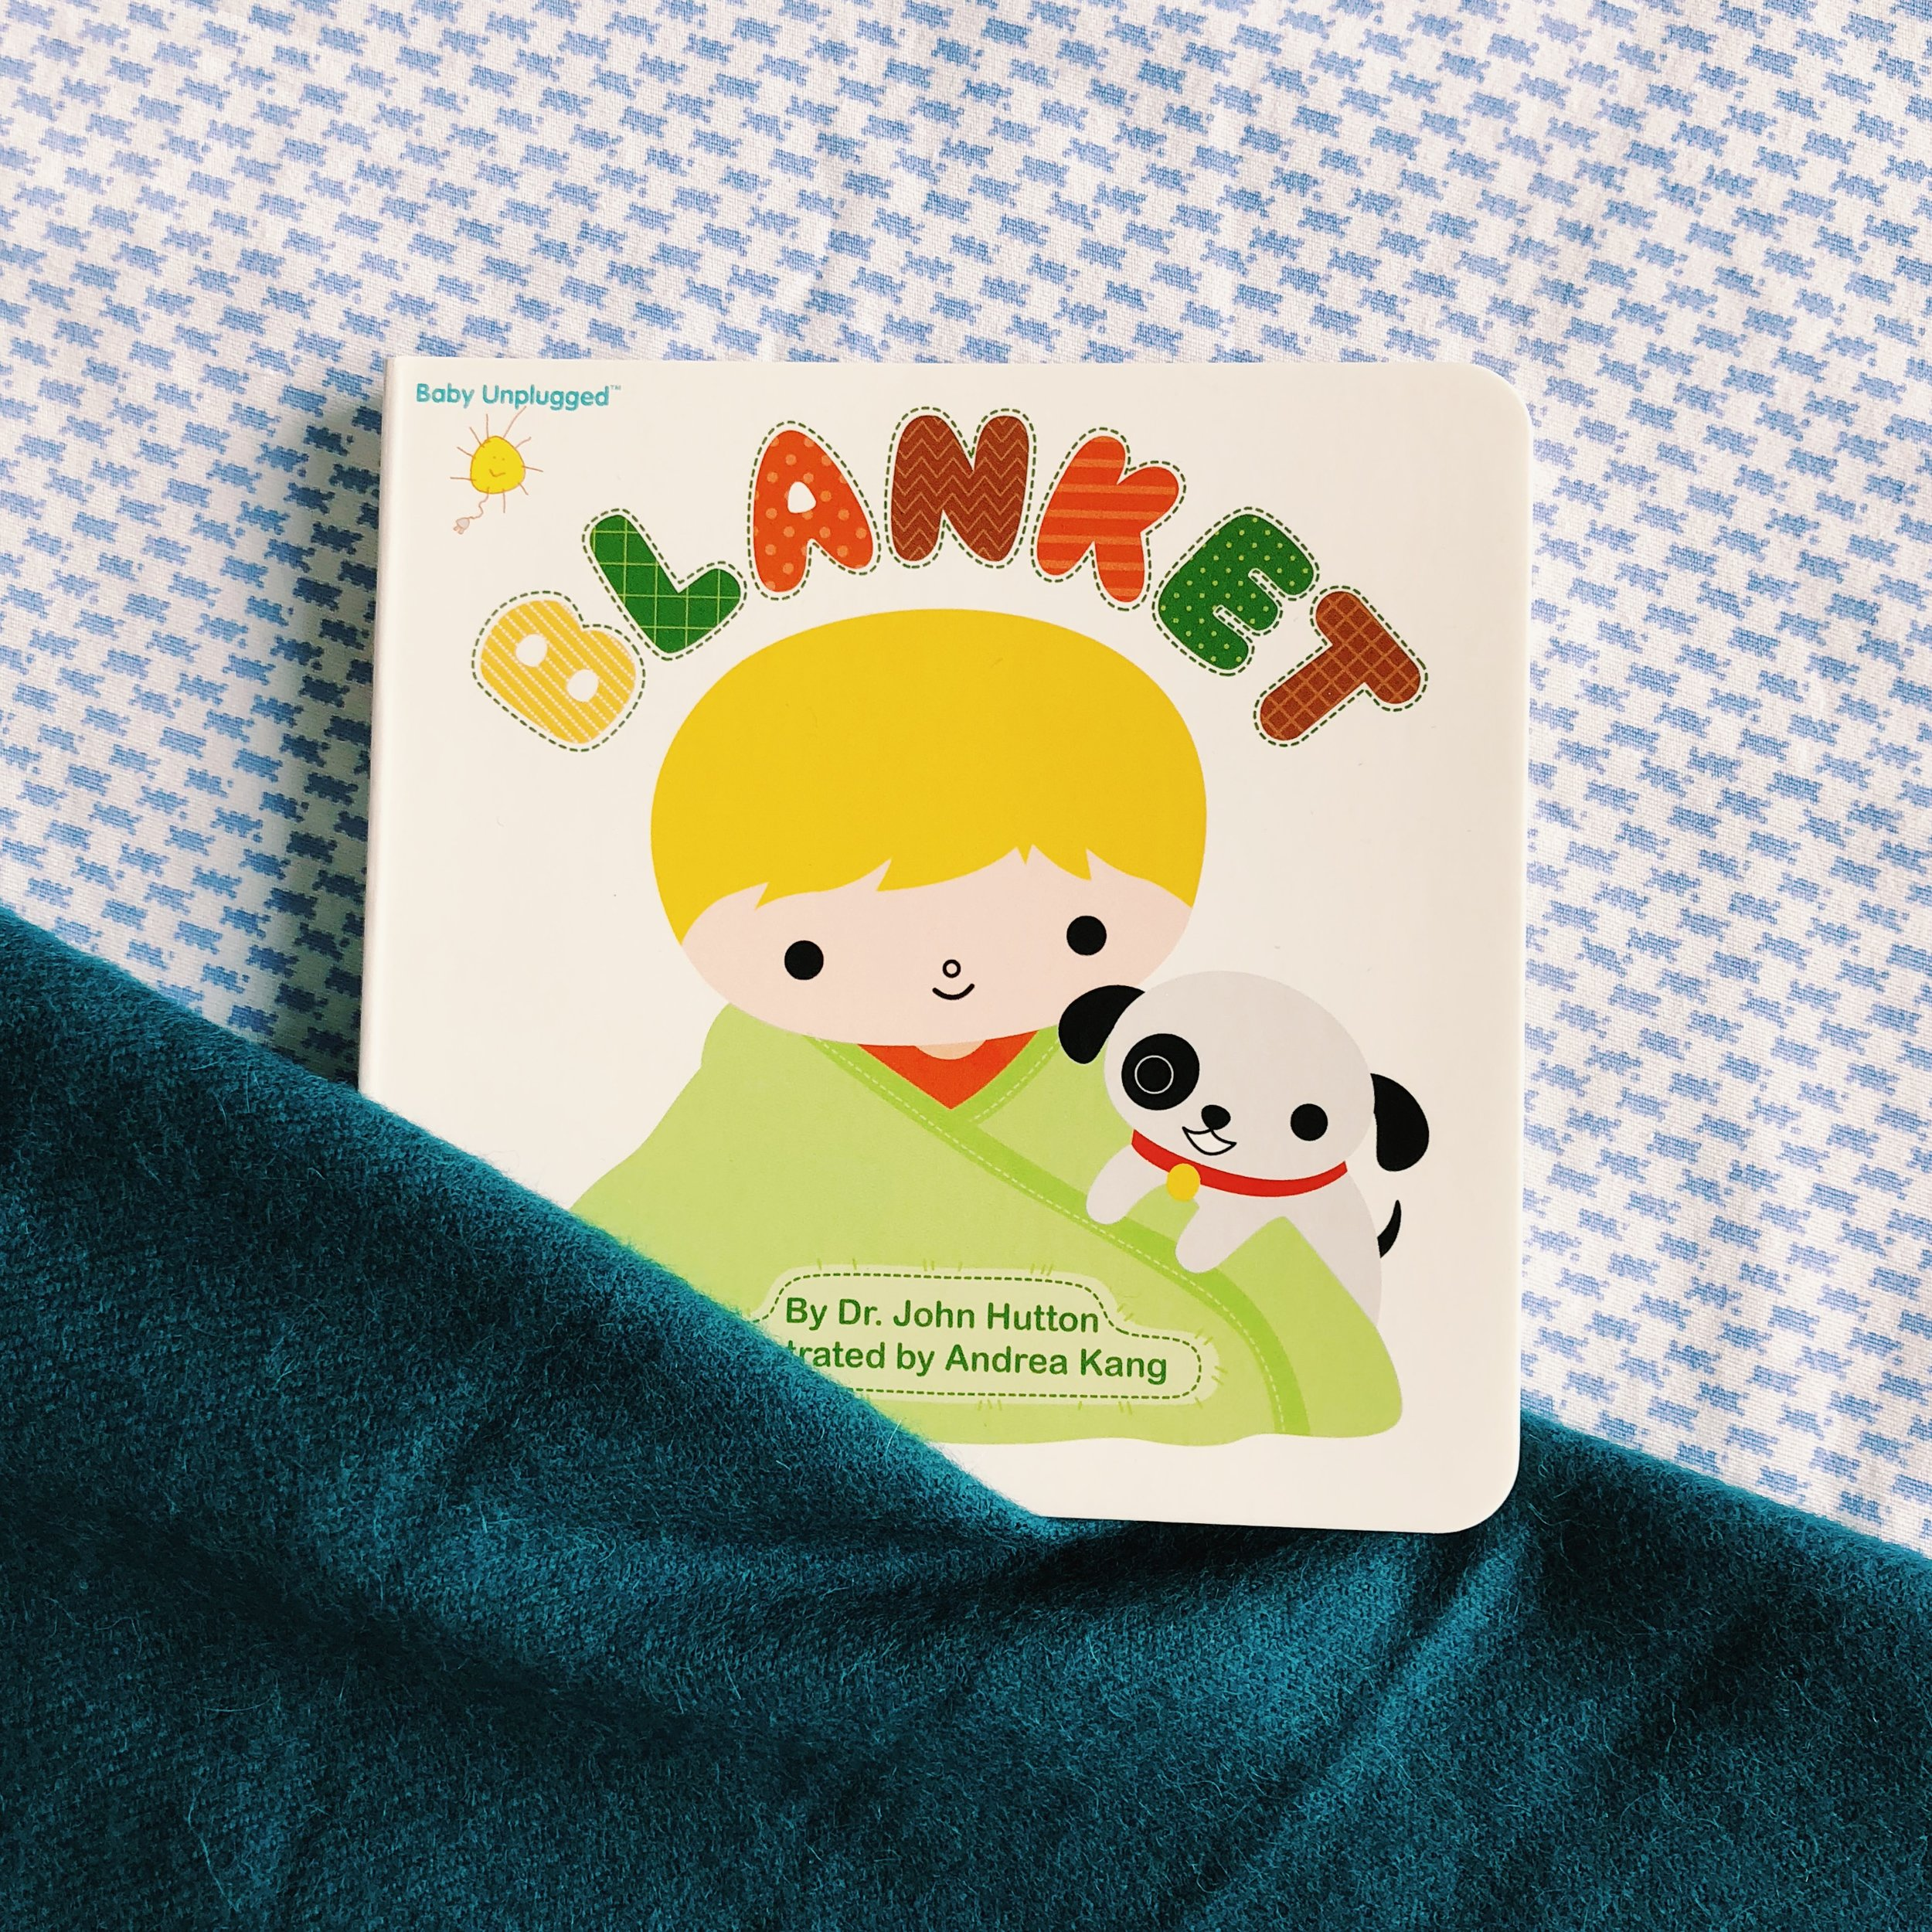 Blanket   written by Dr. John Hutton and illustrated by Andrea Kang